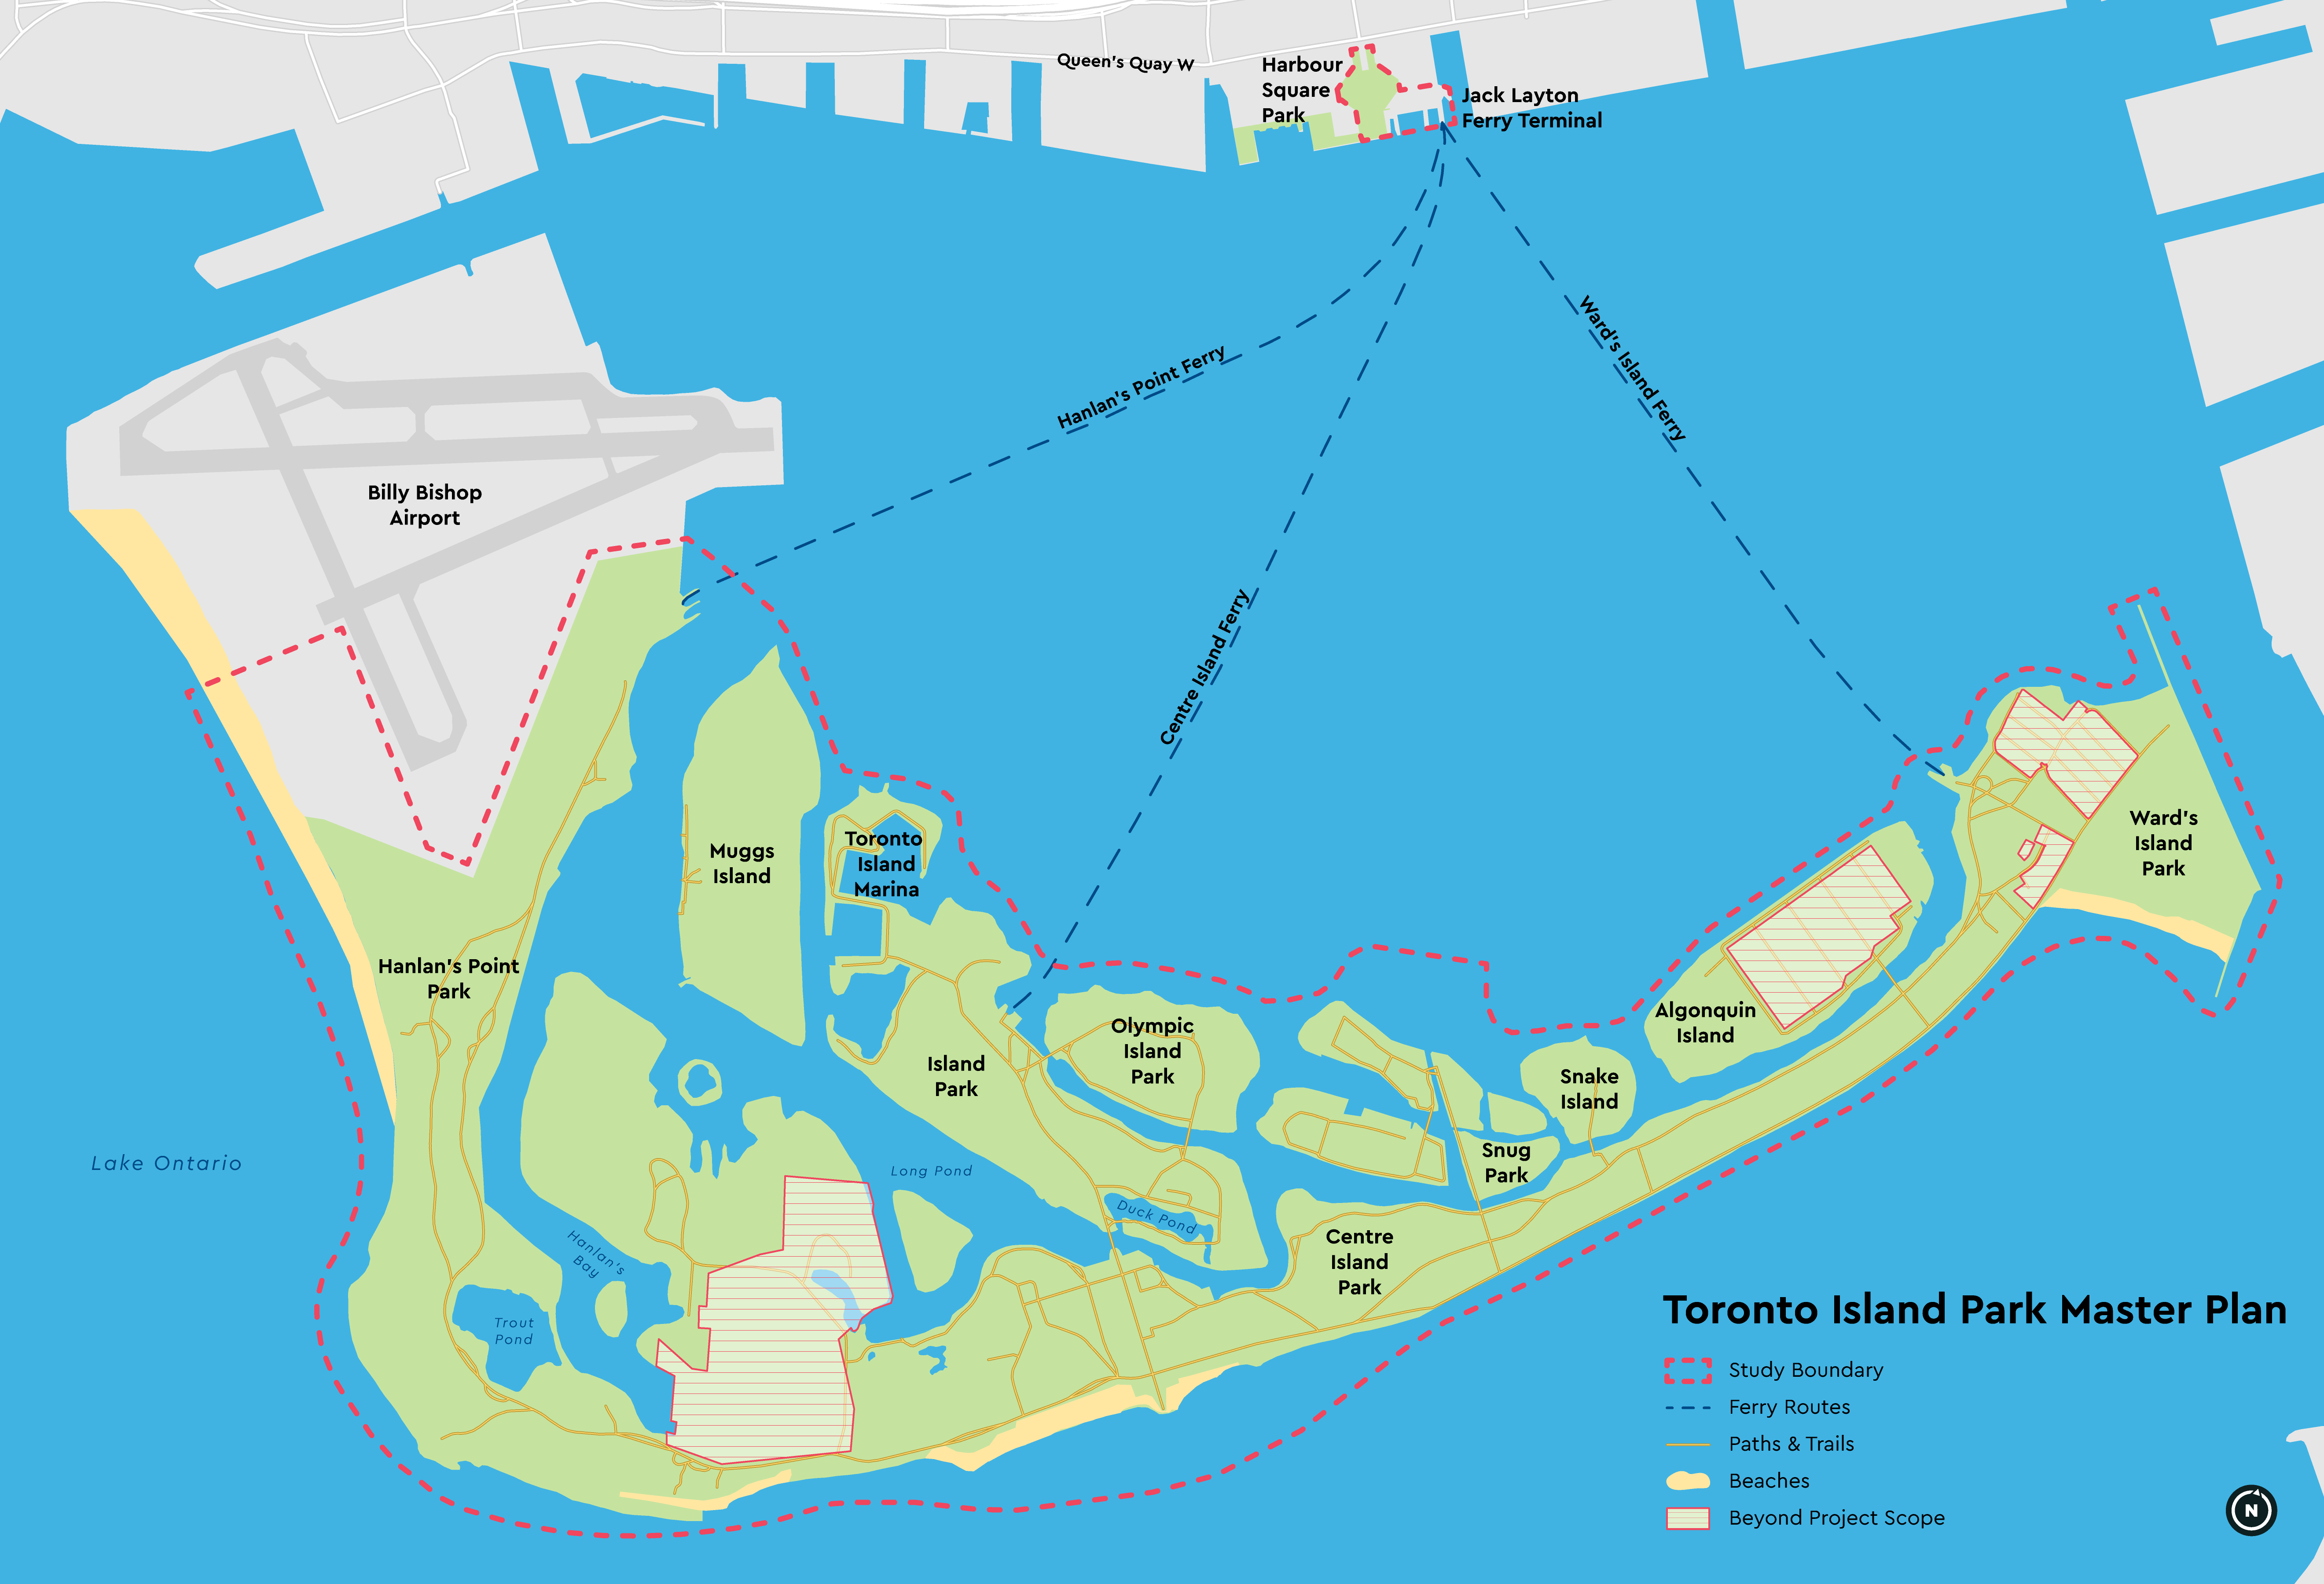 The study area for the Toronto Island Park Master Plan includes all of Toronto Island Park, in addition to the area around the Jack Layton Ferry Terminal. It does not include areas on the Island where there is housing, the service area around the water treatment plant, and the Island Airport.